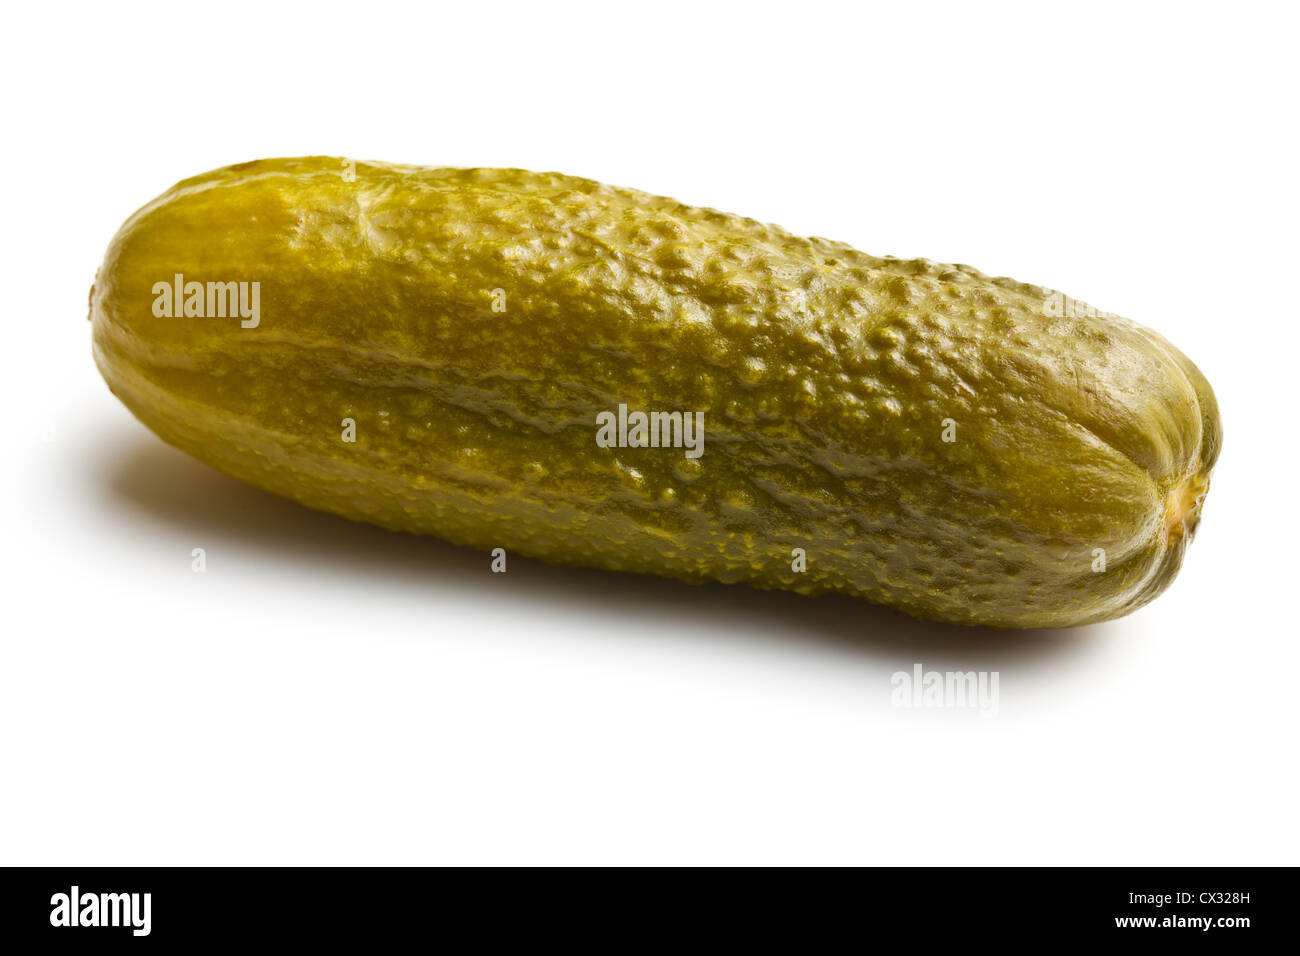 Pickled cucumbers on white background - Stock Image